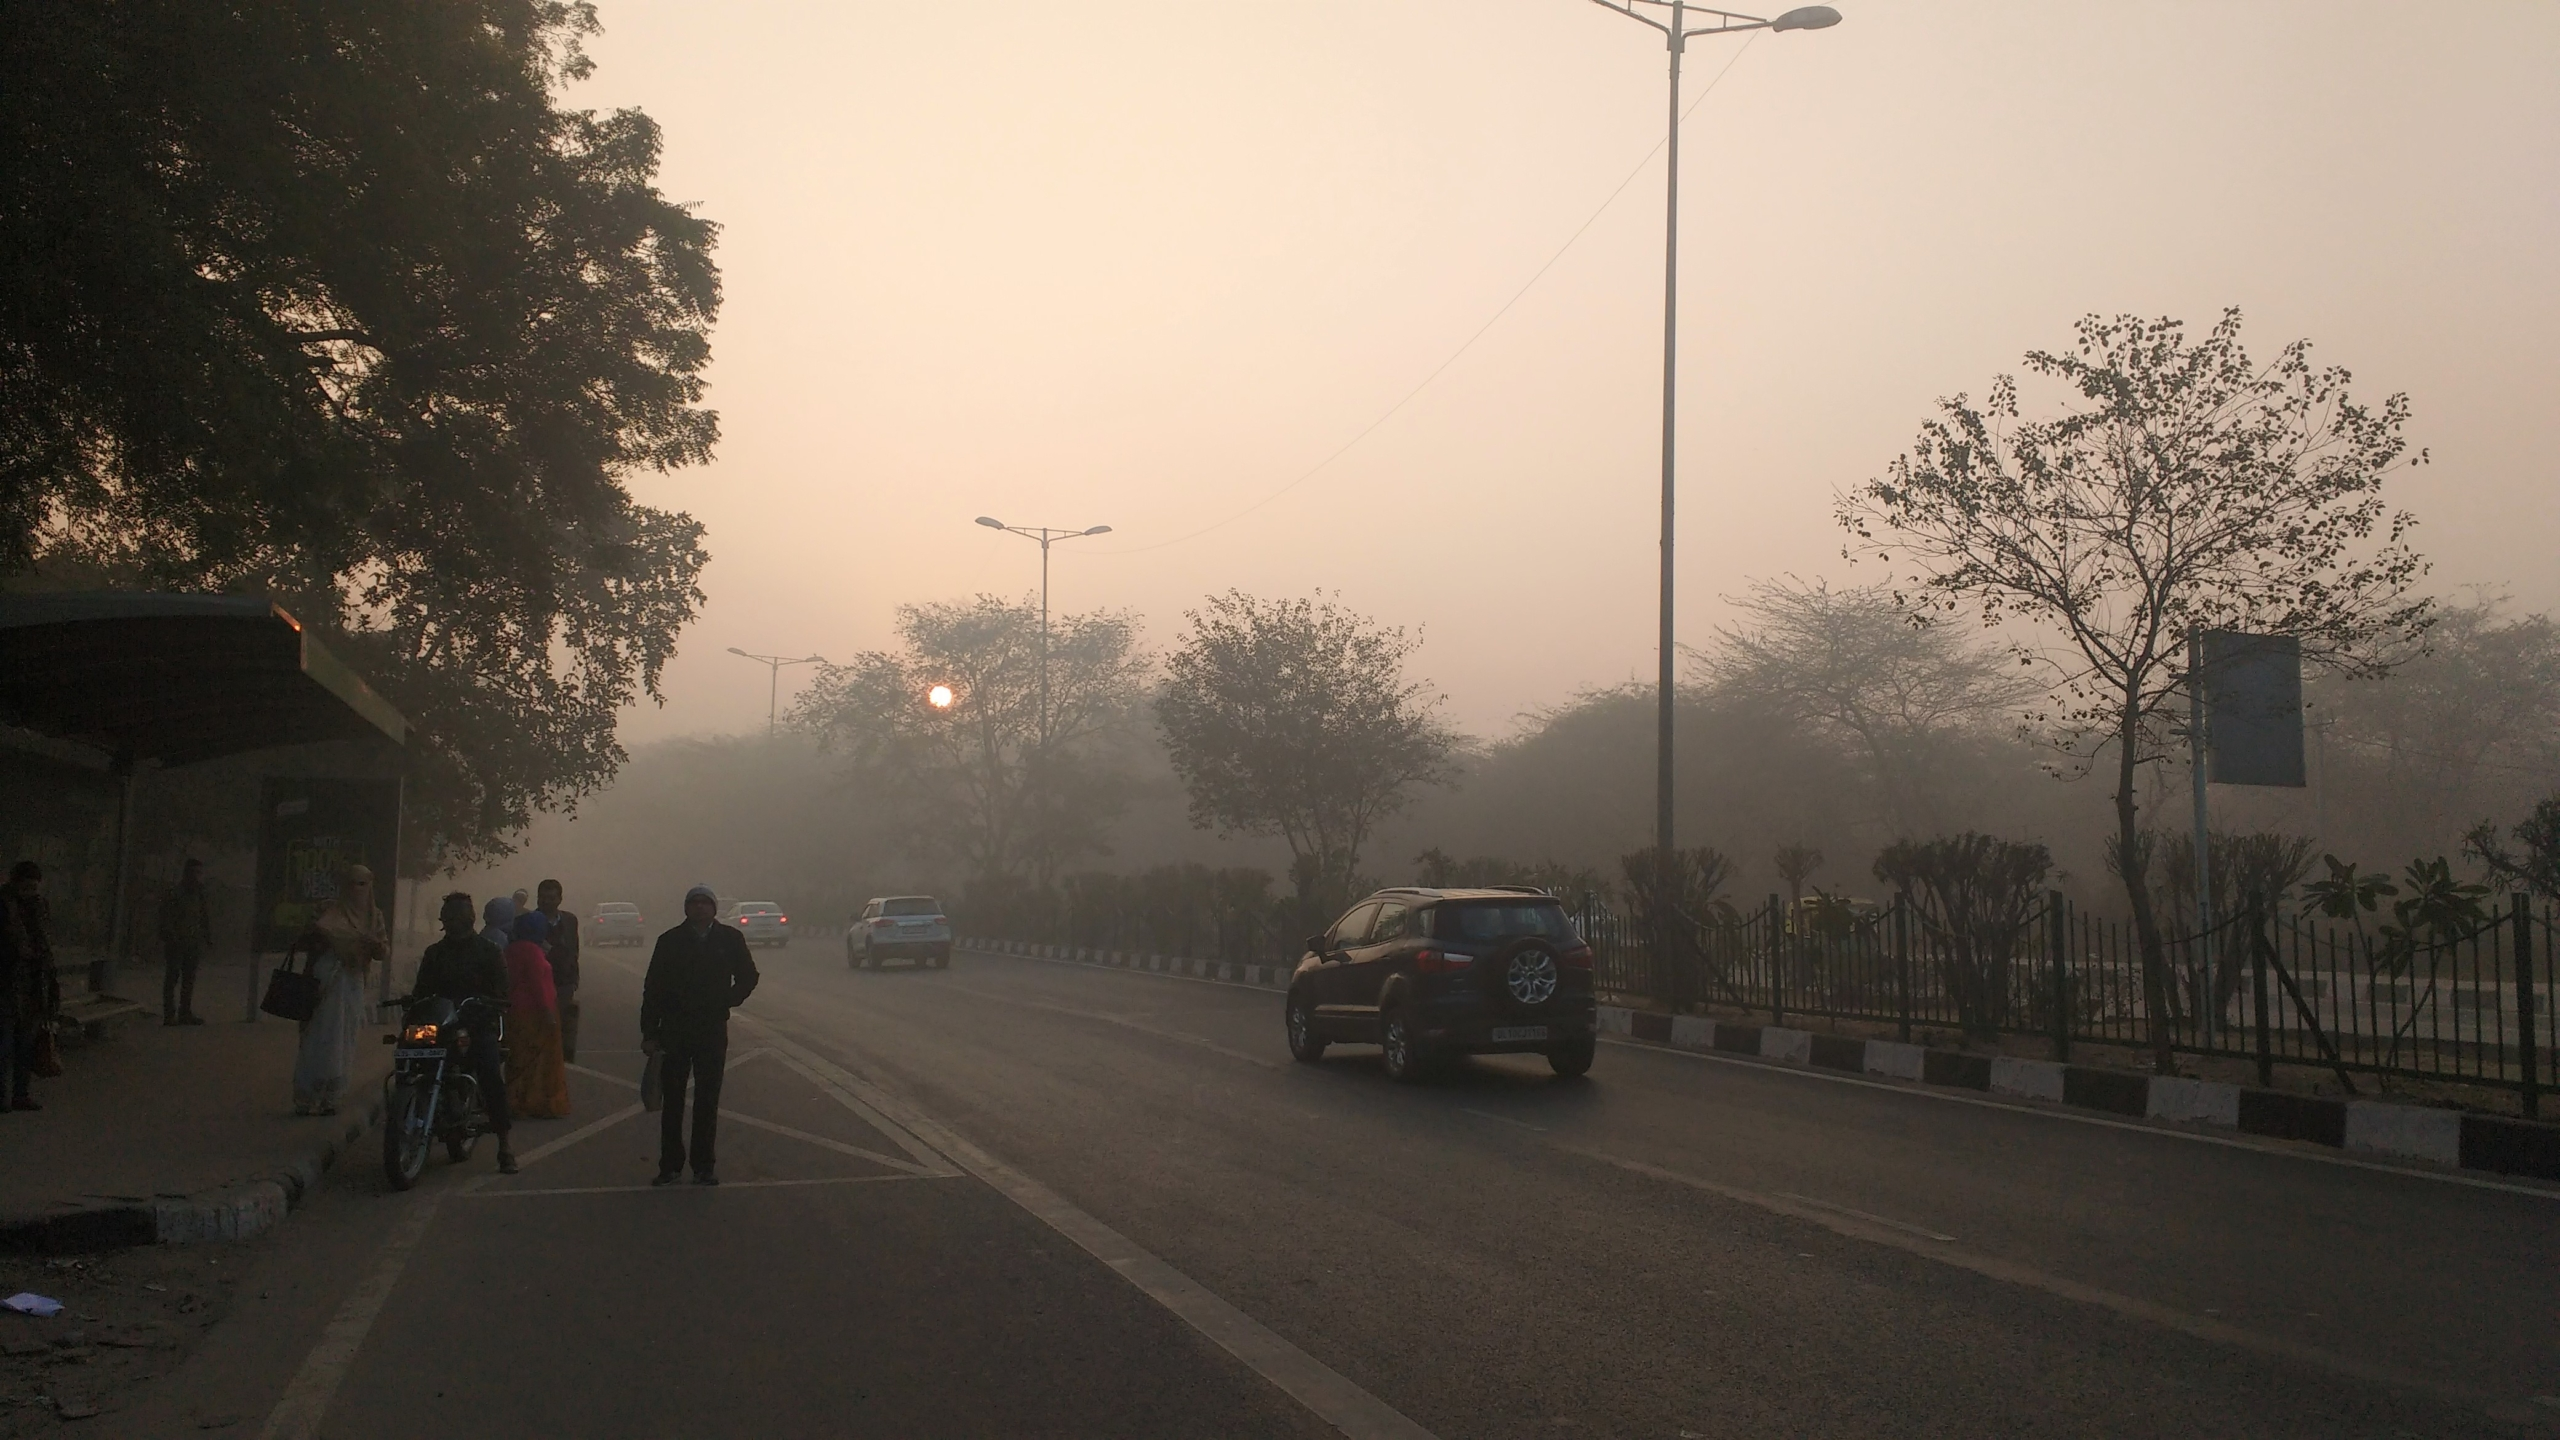 India winter high unsafe PM2.5 pollution levels compared with summer